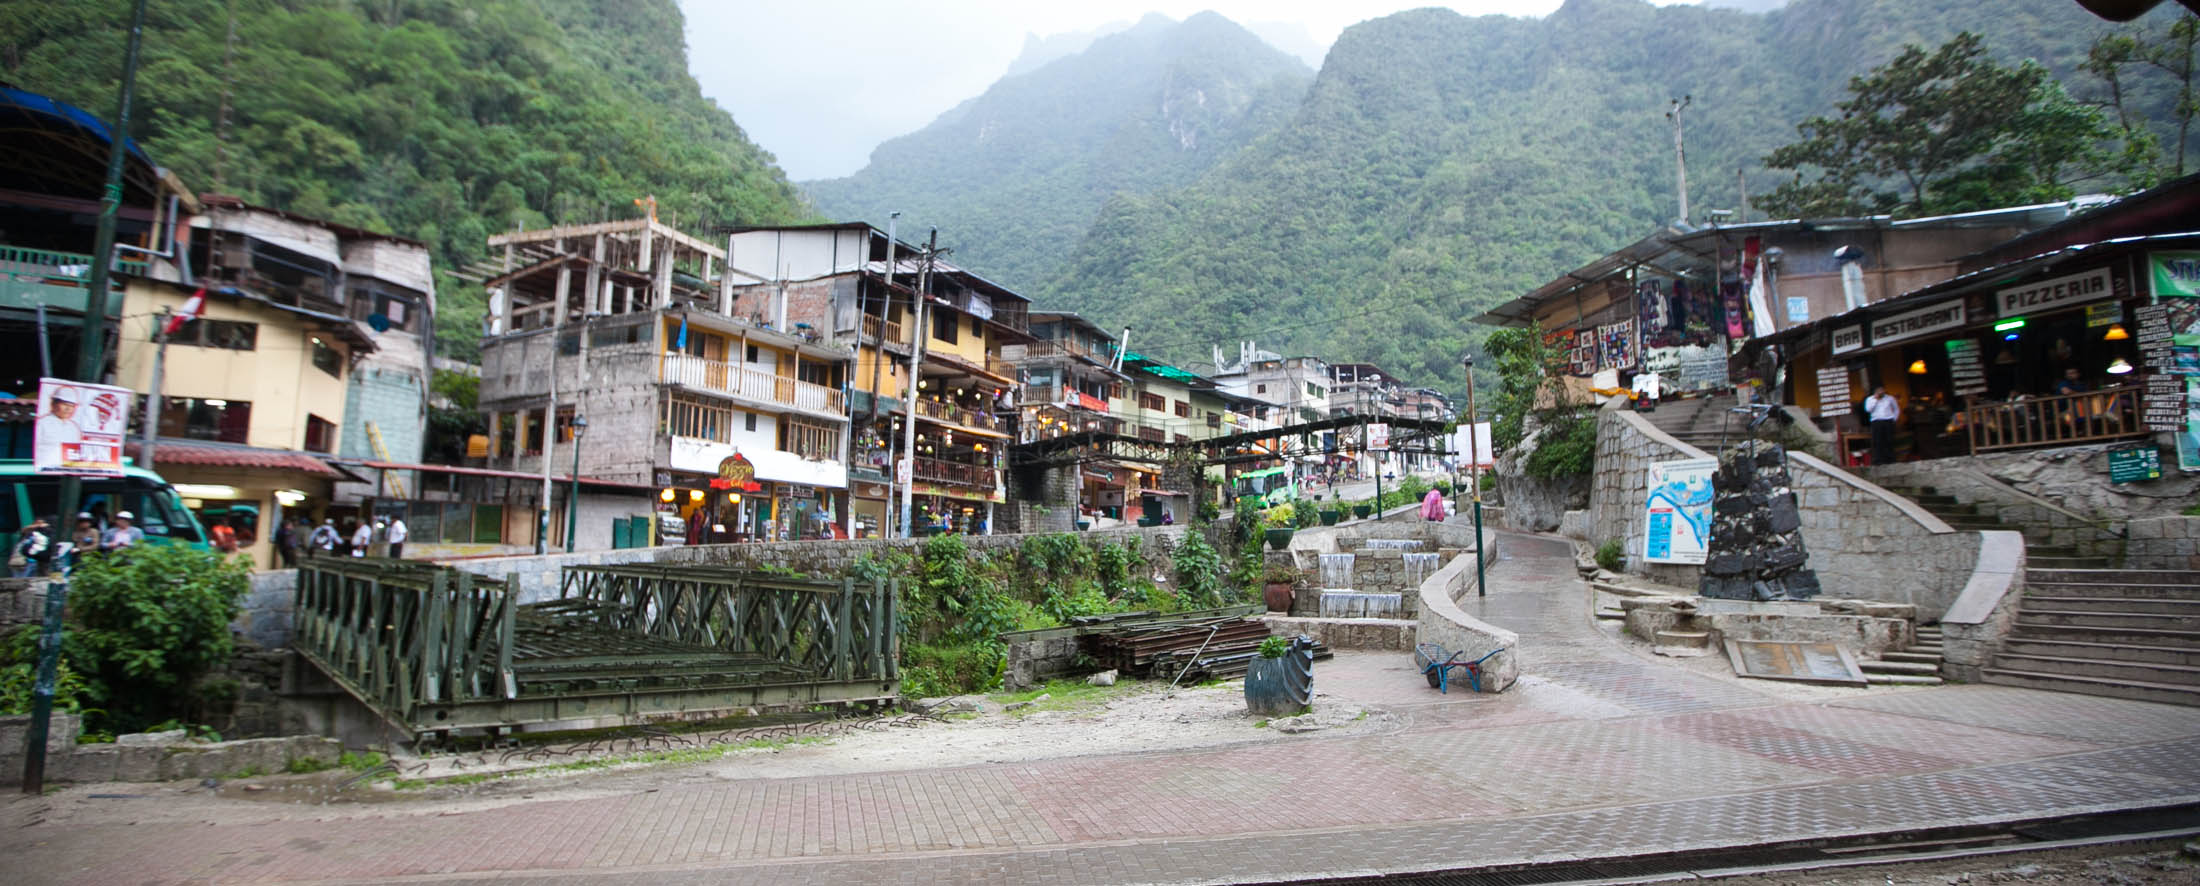 Main street of Aguas Calientes, Peru